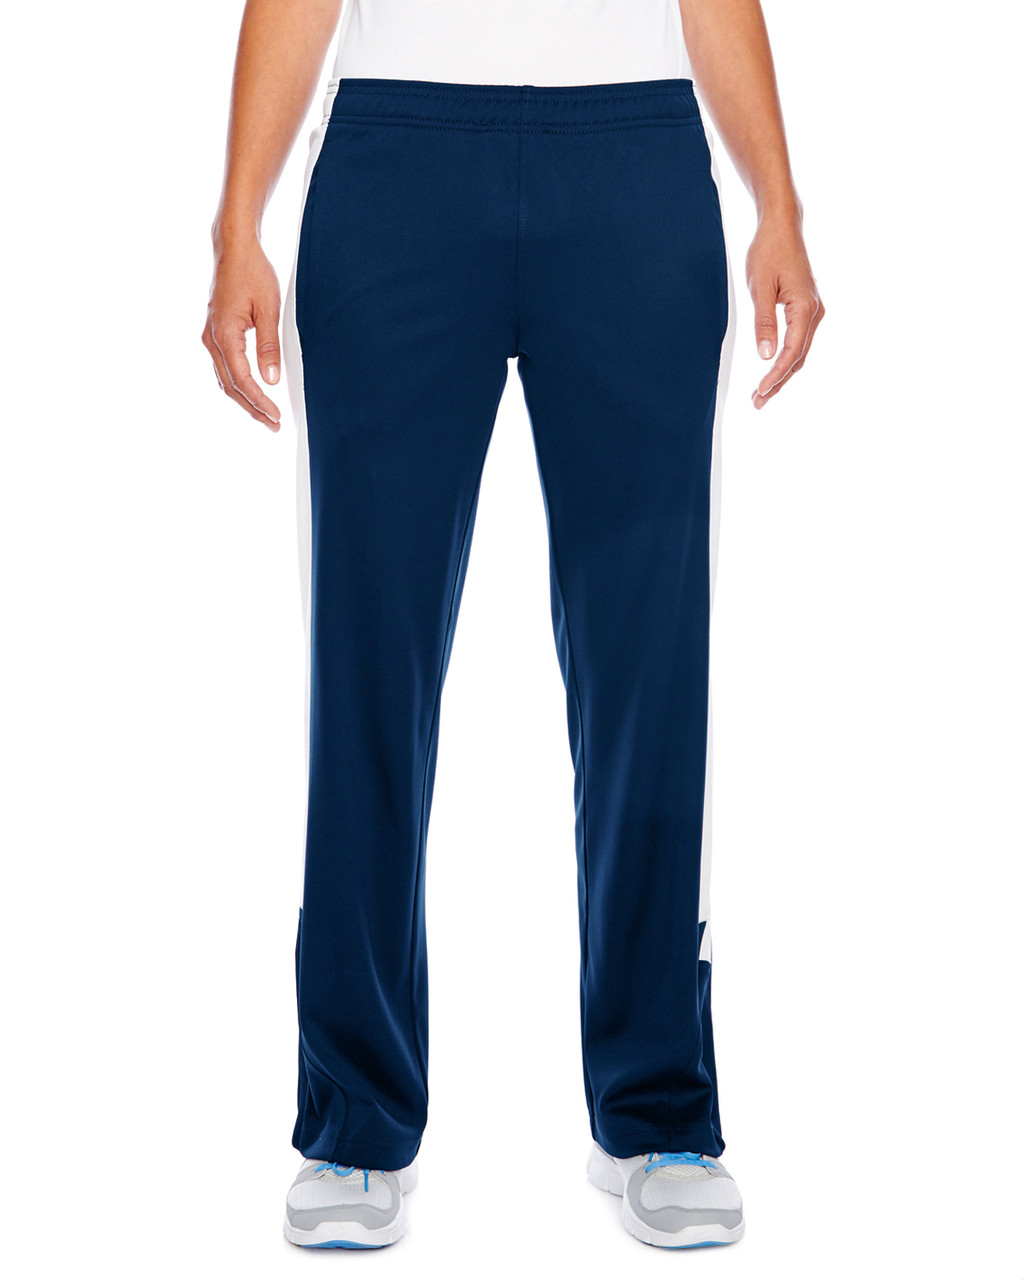 Dark Navy/White - TT44W Team 365 Ladies' Performance Fleece Pant | Blankclothing.ca